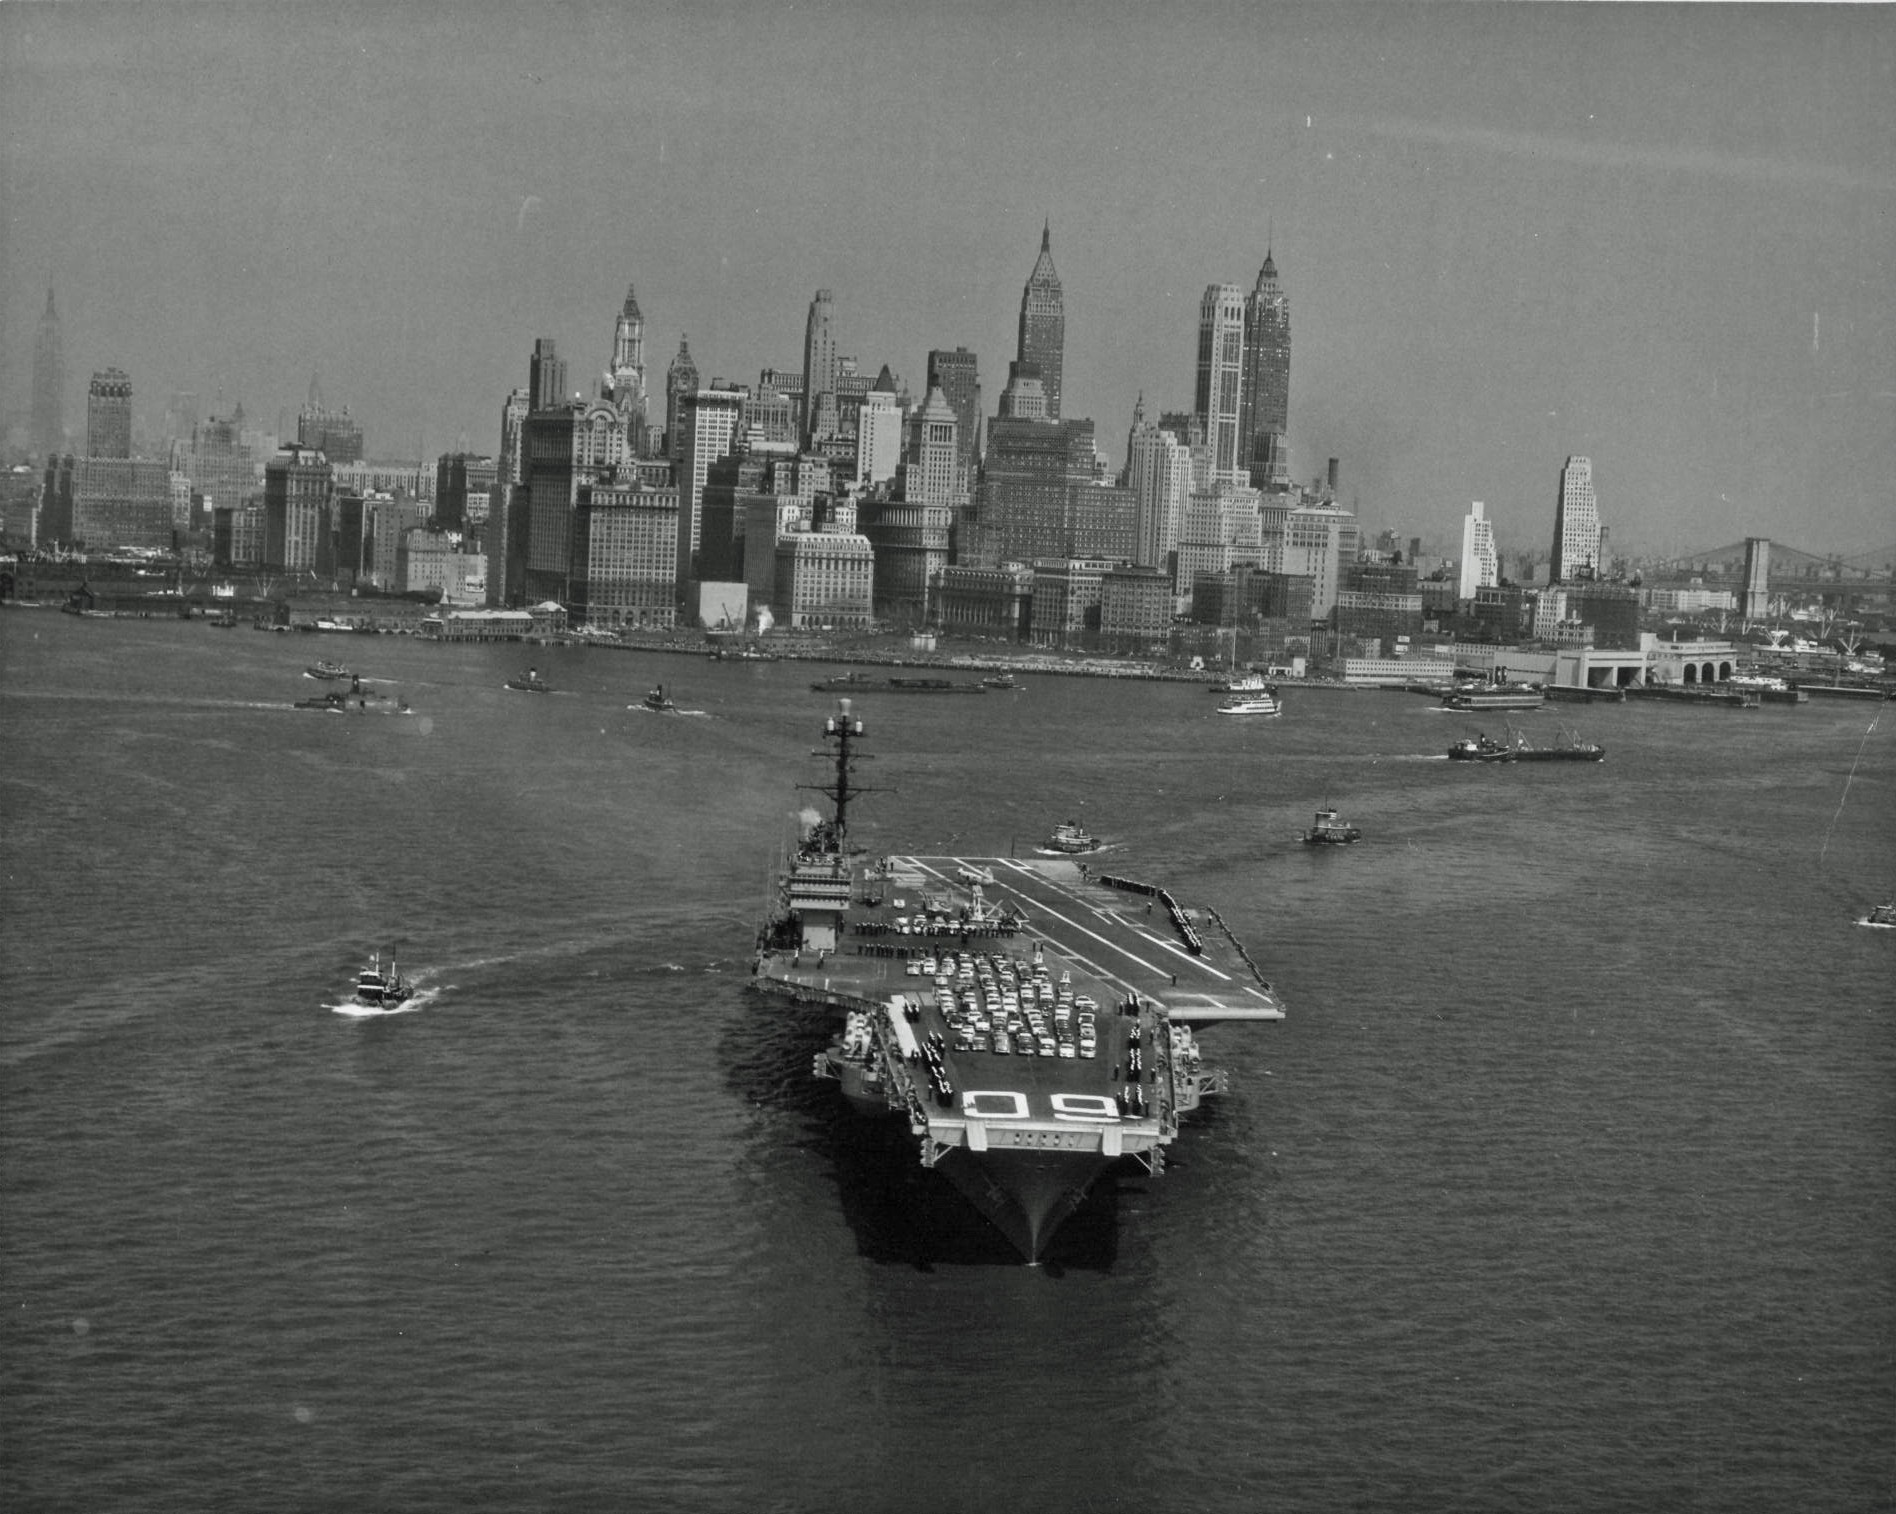 New York port, 1950s, 1950s New York